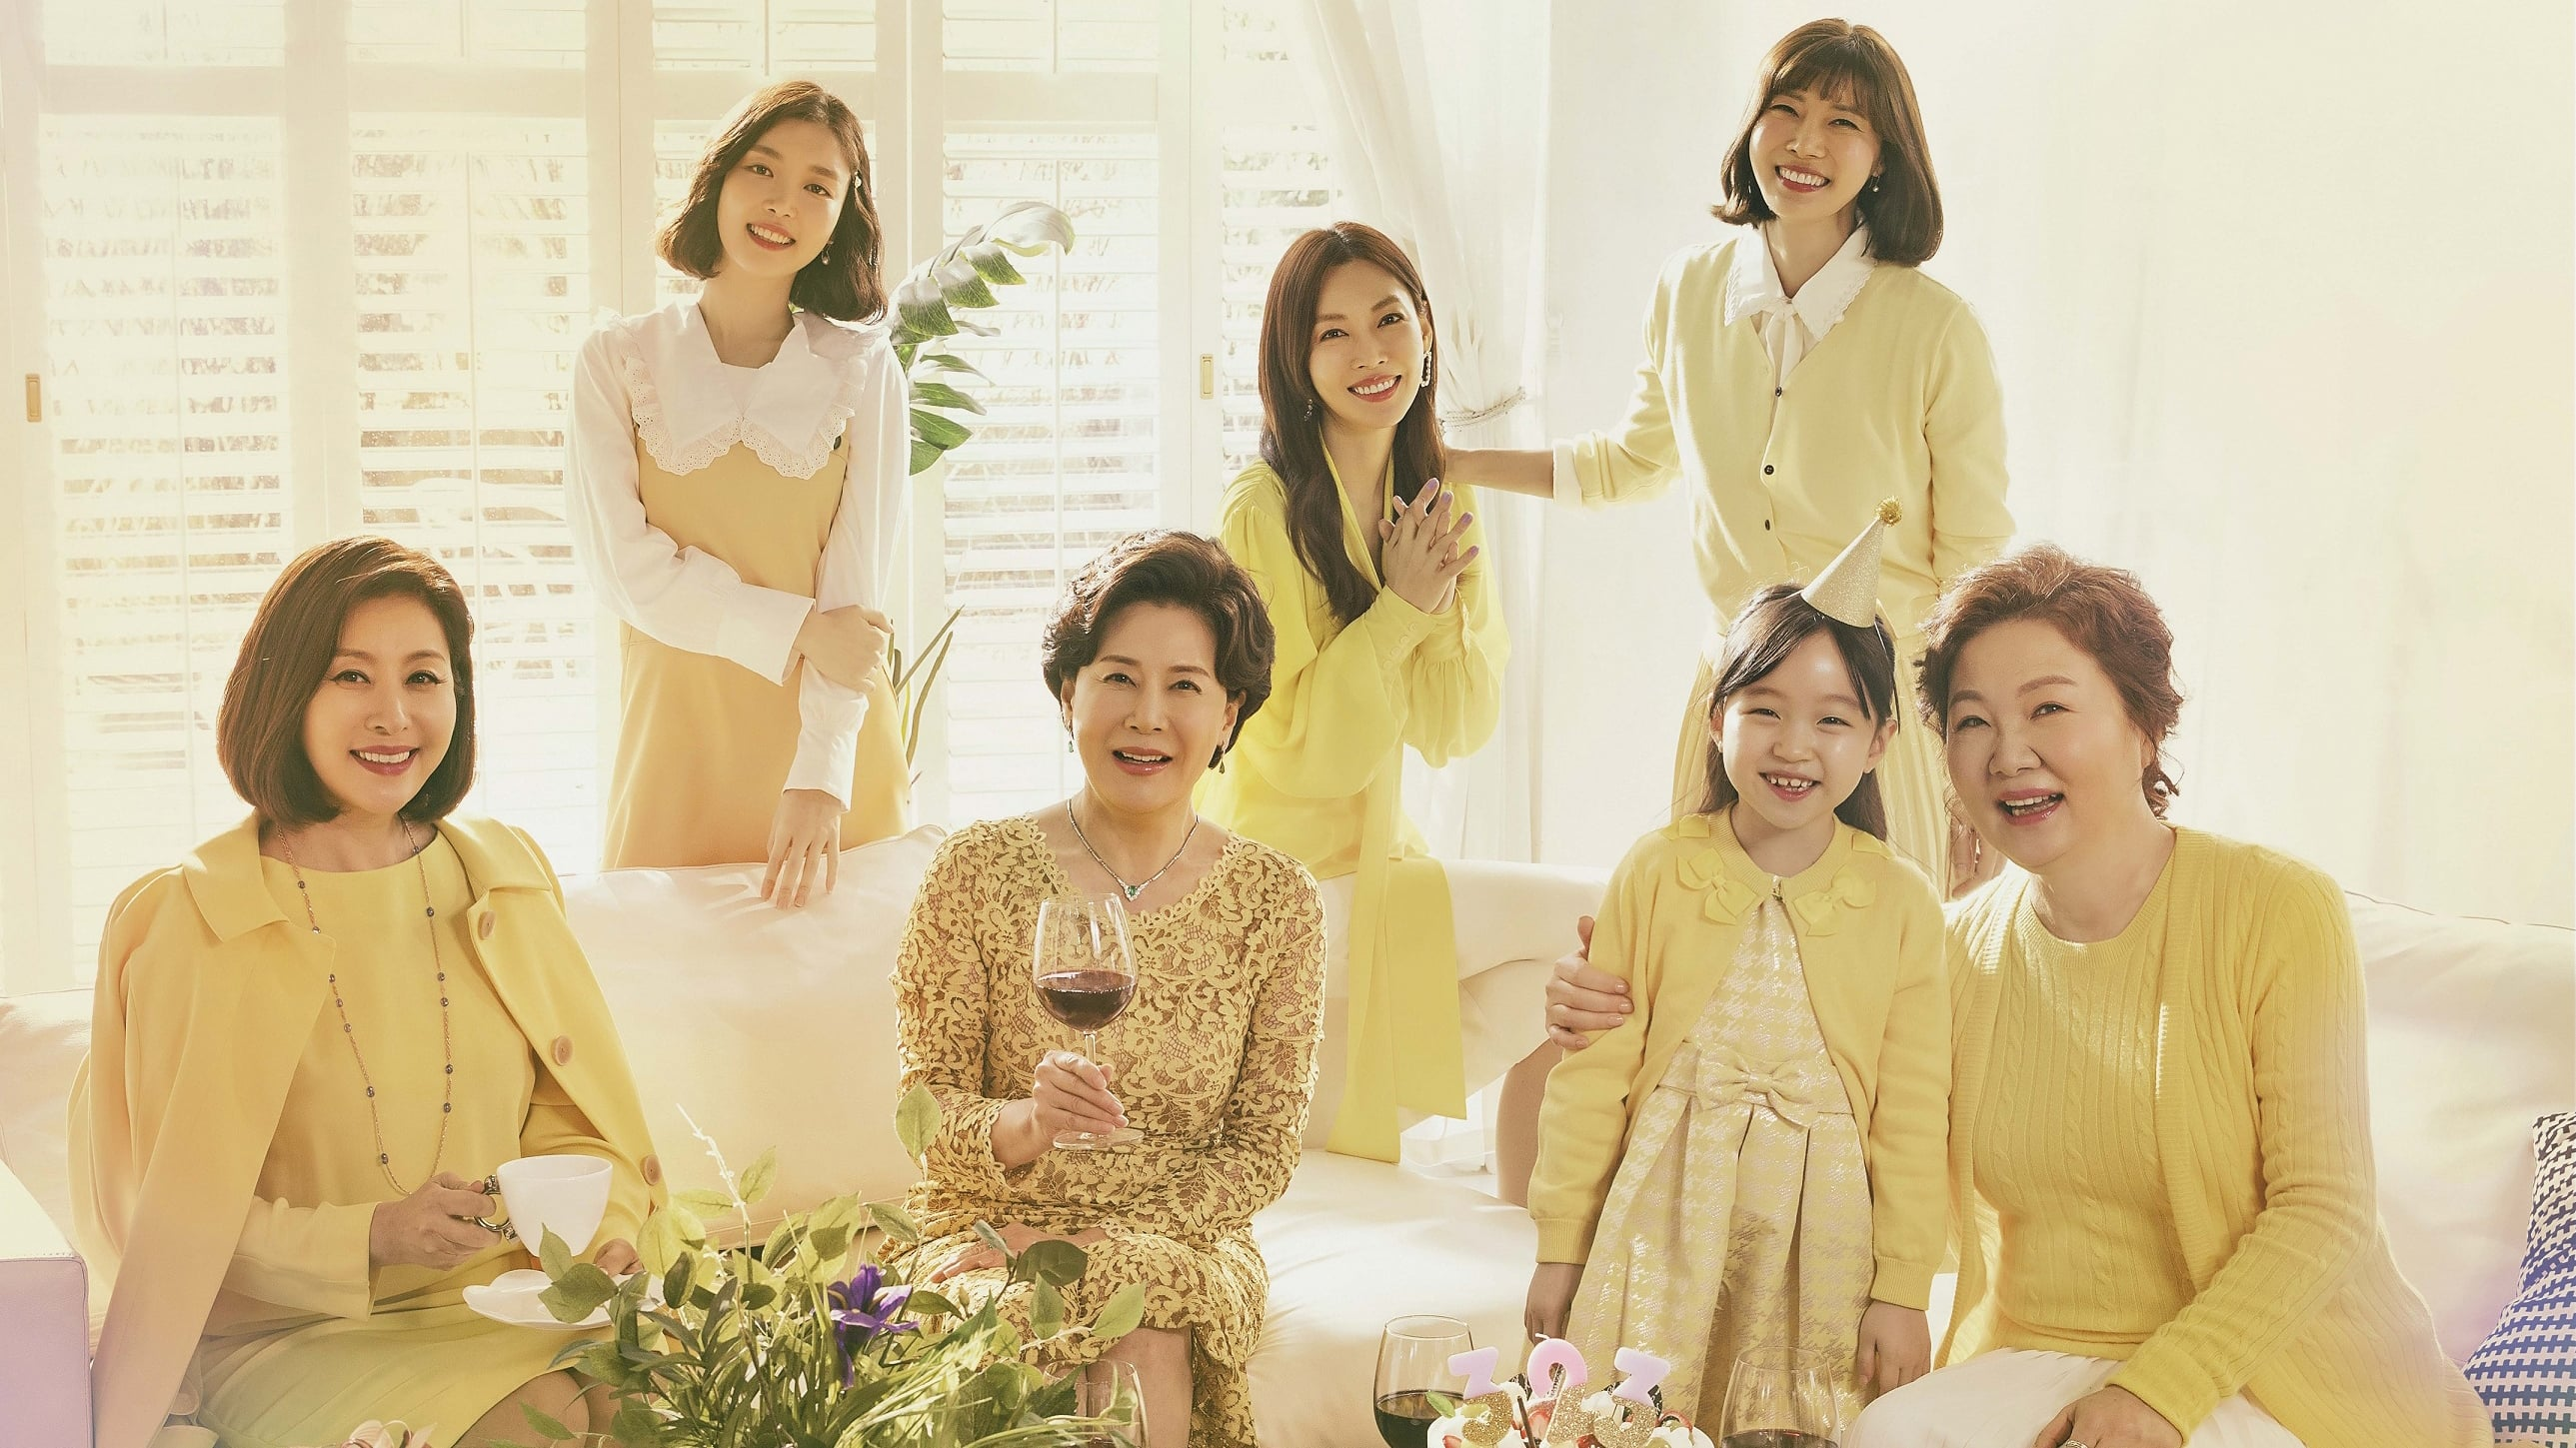 Mother of Mine Episode 1 English Sub Watch Online